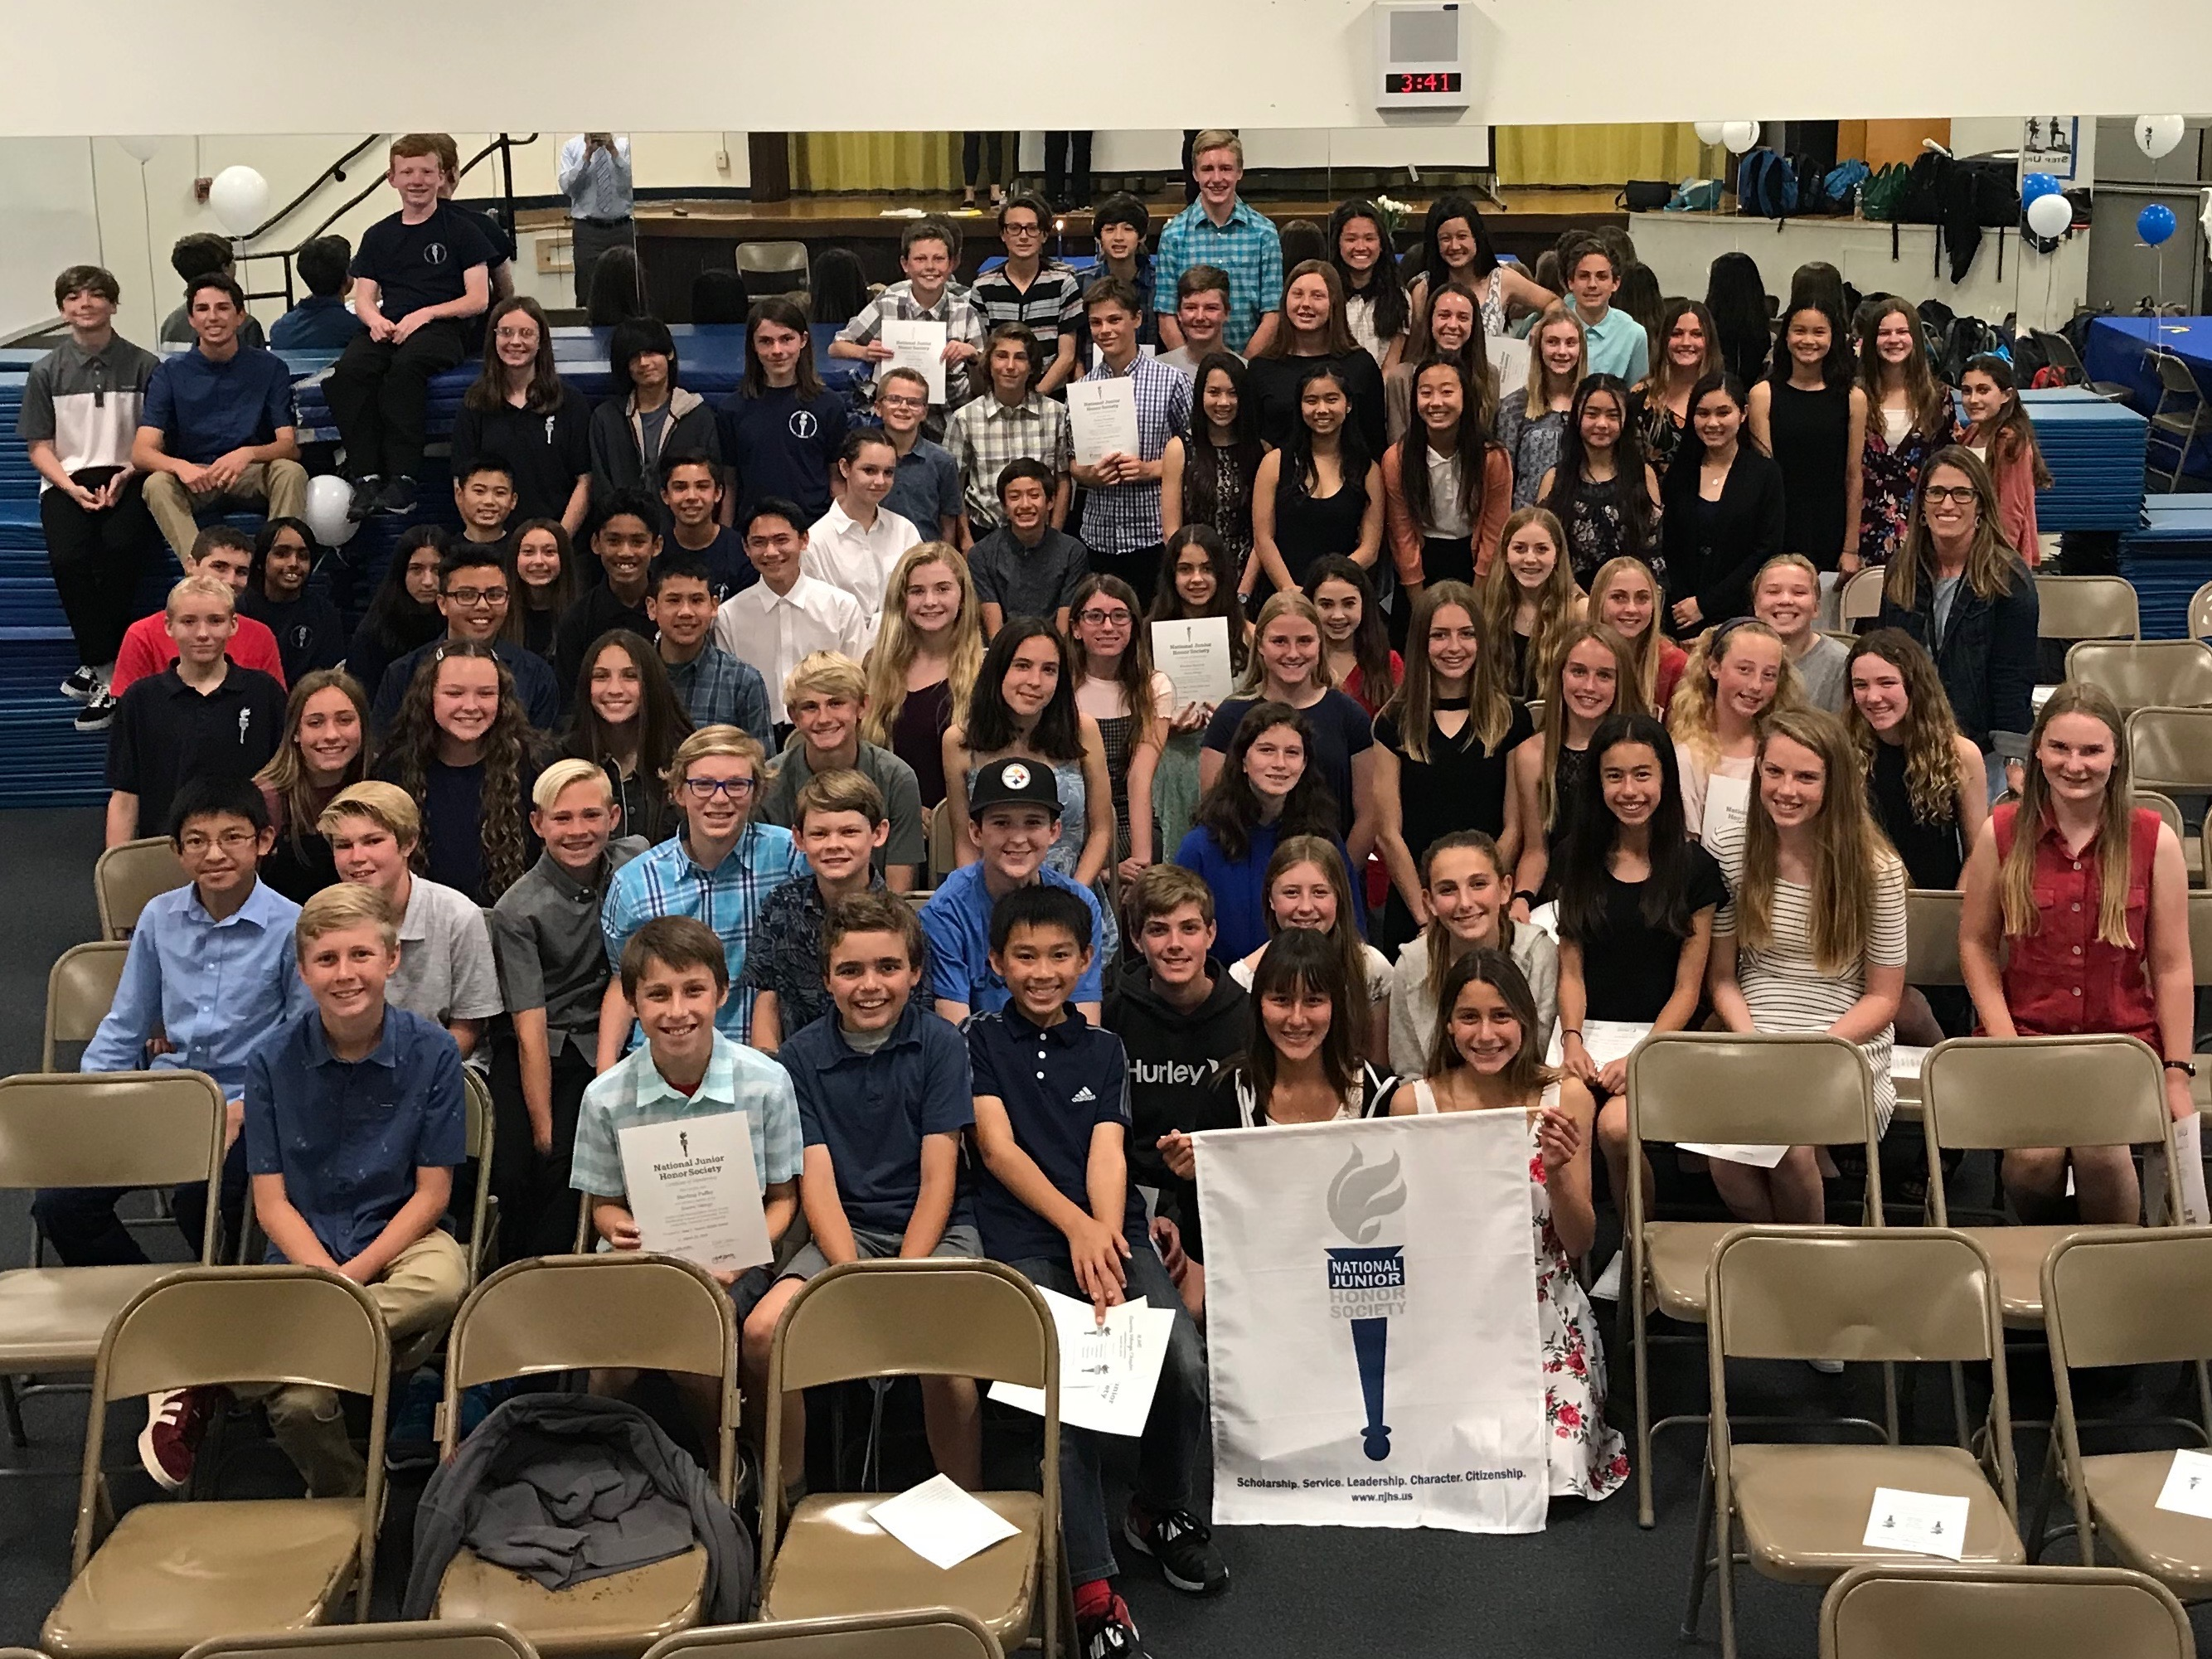 Congratulations to NJHS Newest Members!